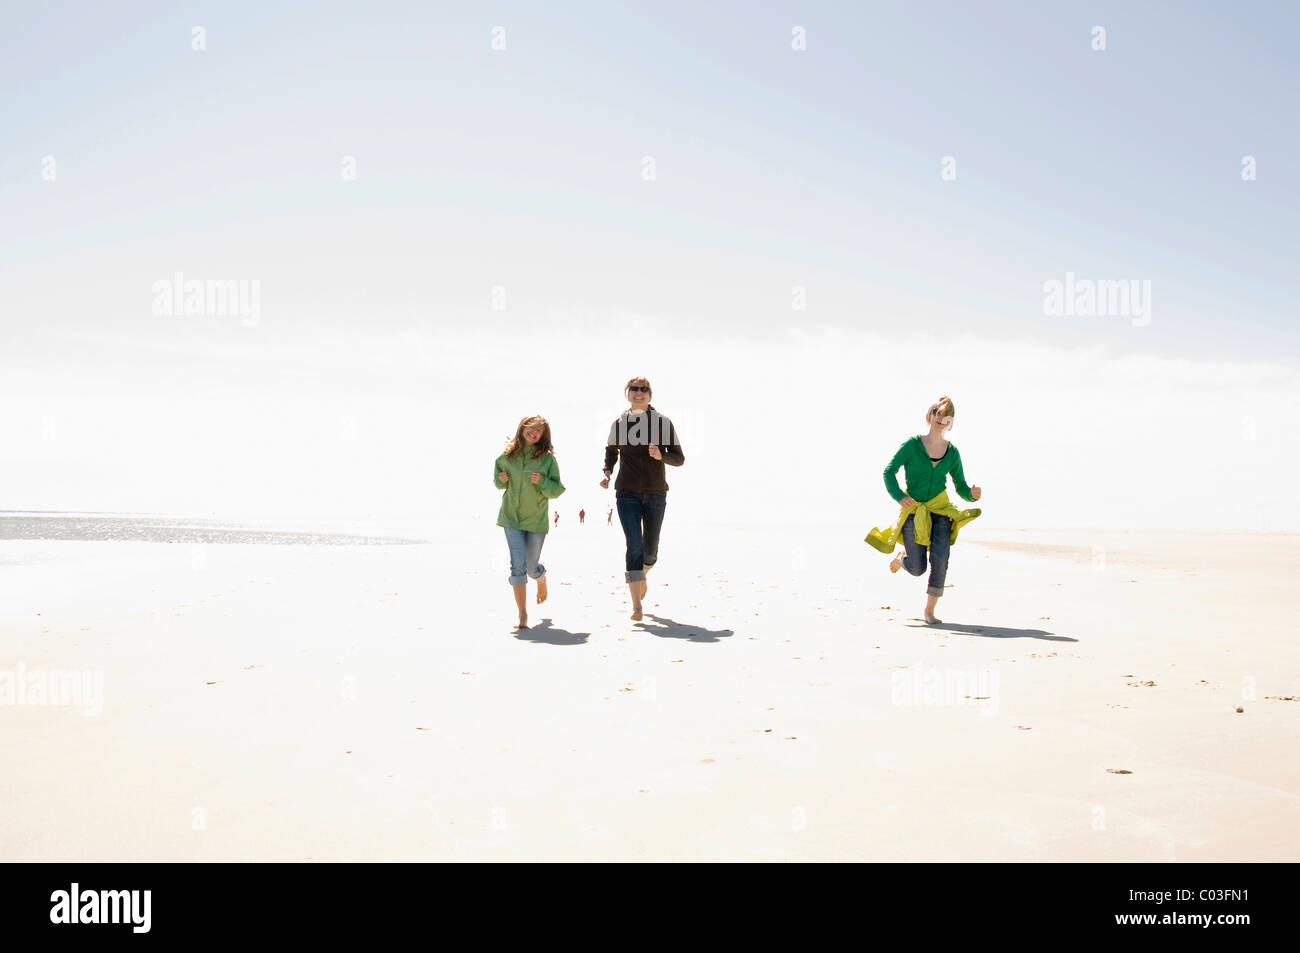 Woman and two children running on the beach of Amrum island, Schleswig-Holstein, Germany, Europe - Stock Image